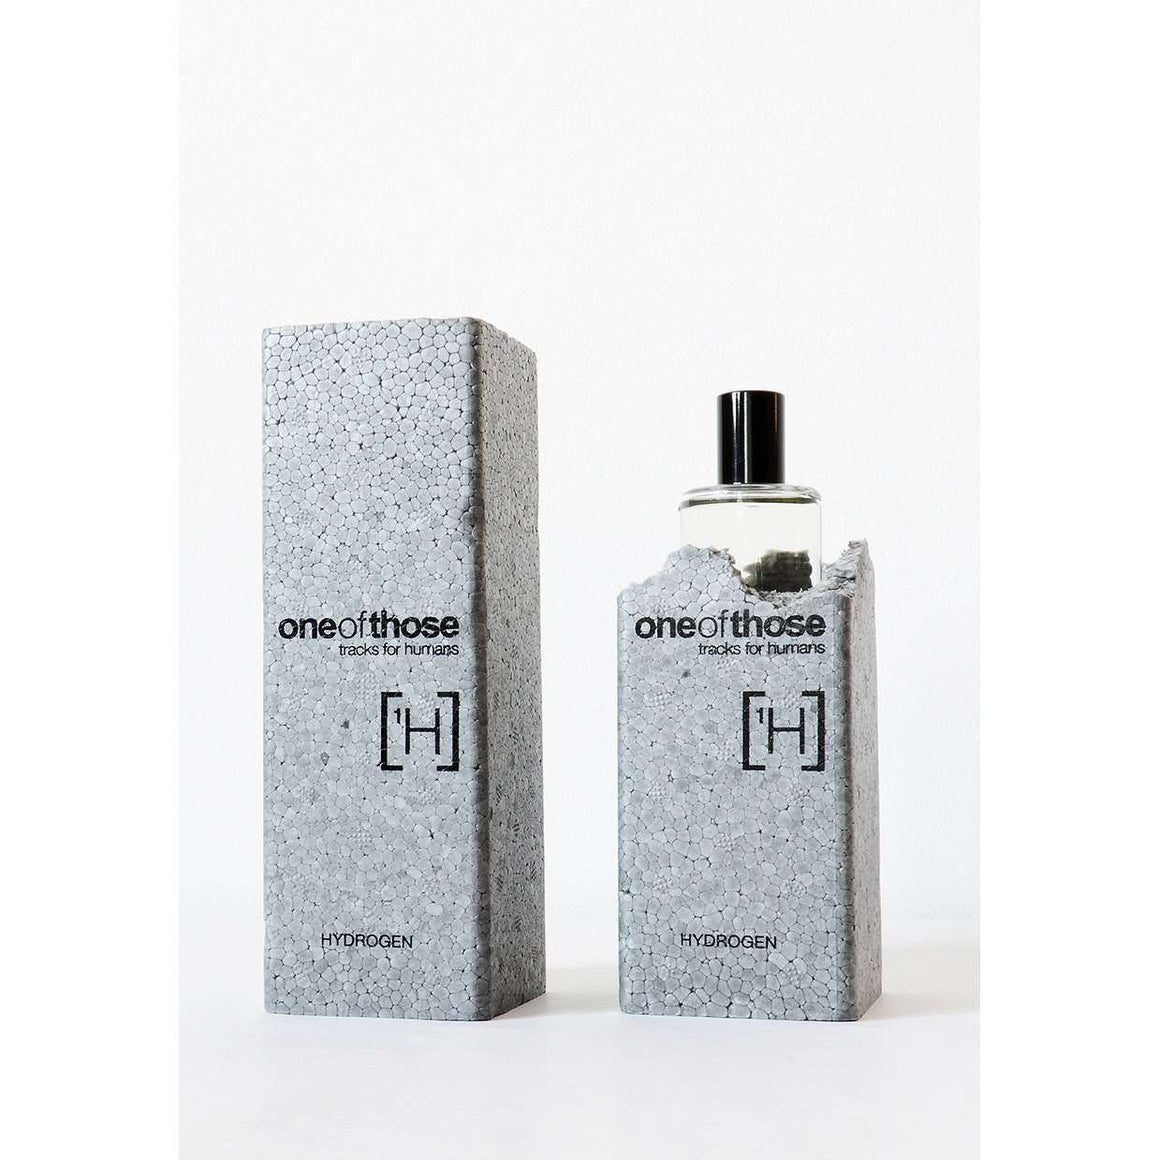 oneofthose Hydrogen perfume 100mL edp CoolHatcher at TheArtOfLiving.Earth